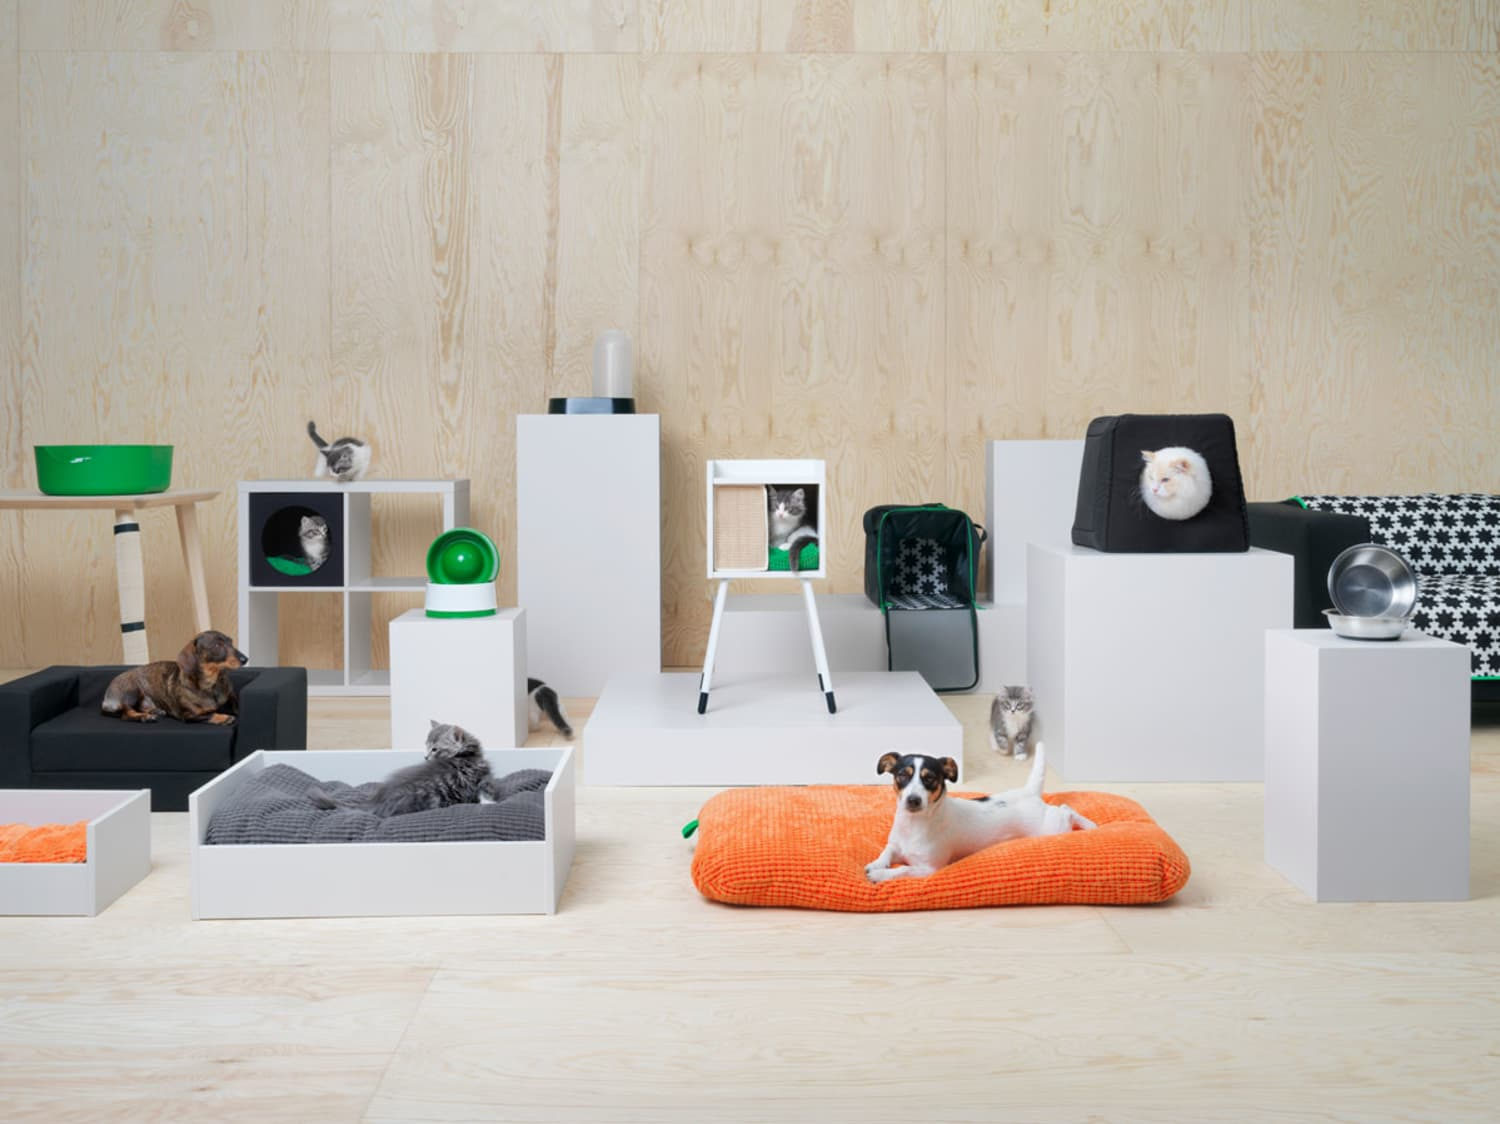 IKEA Has a New Collection for Pets, So Your Dog Can Have Its Own Mini Couch